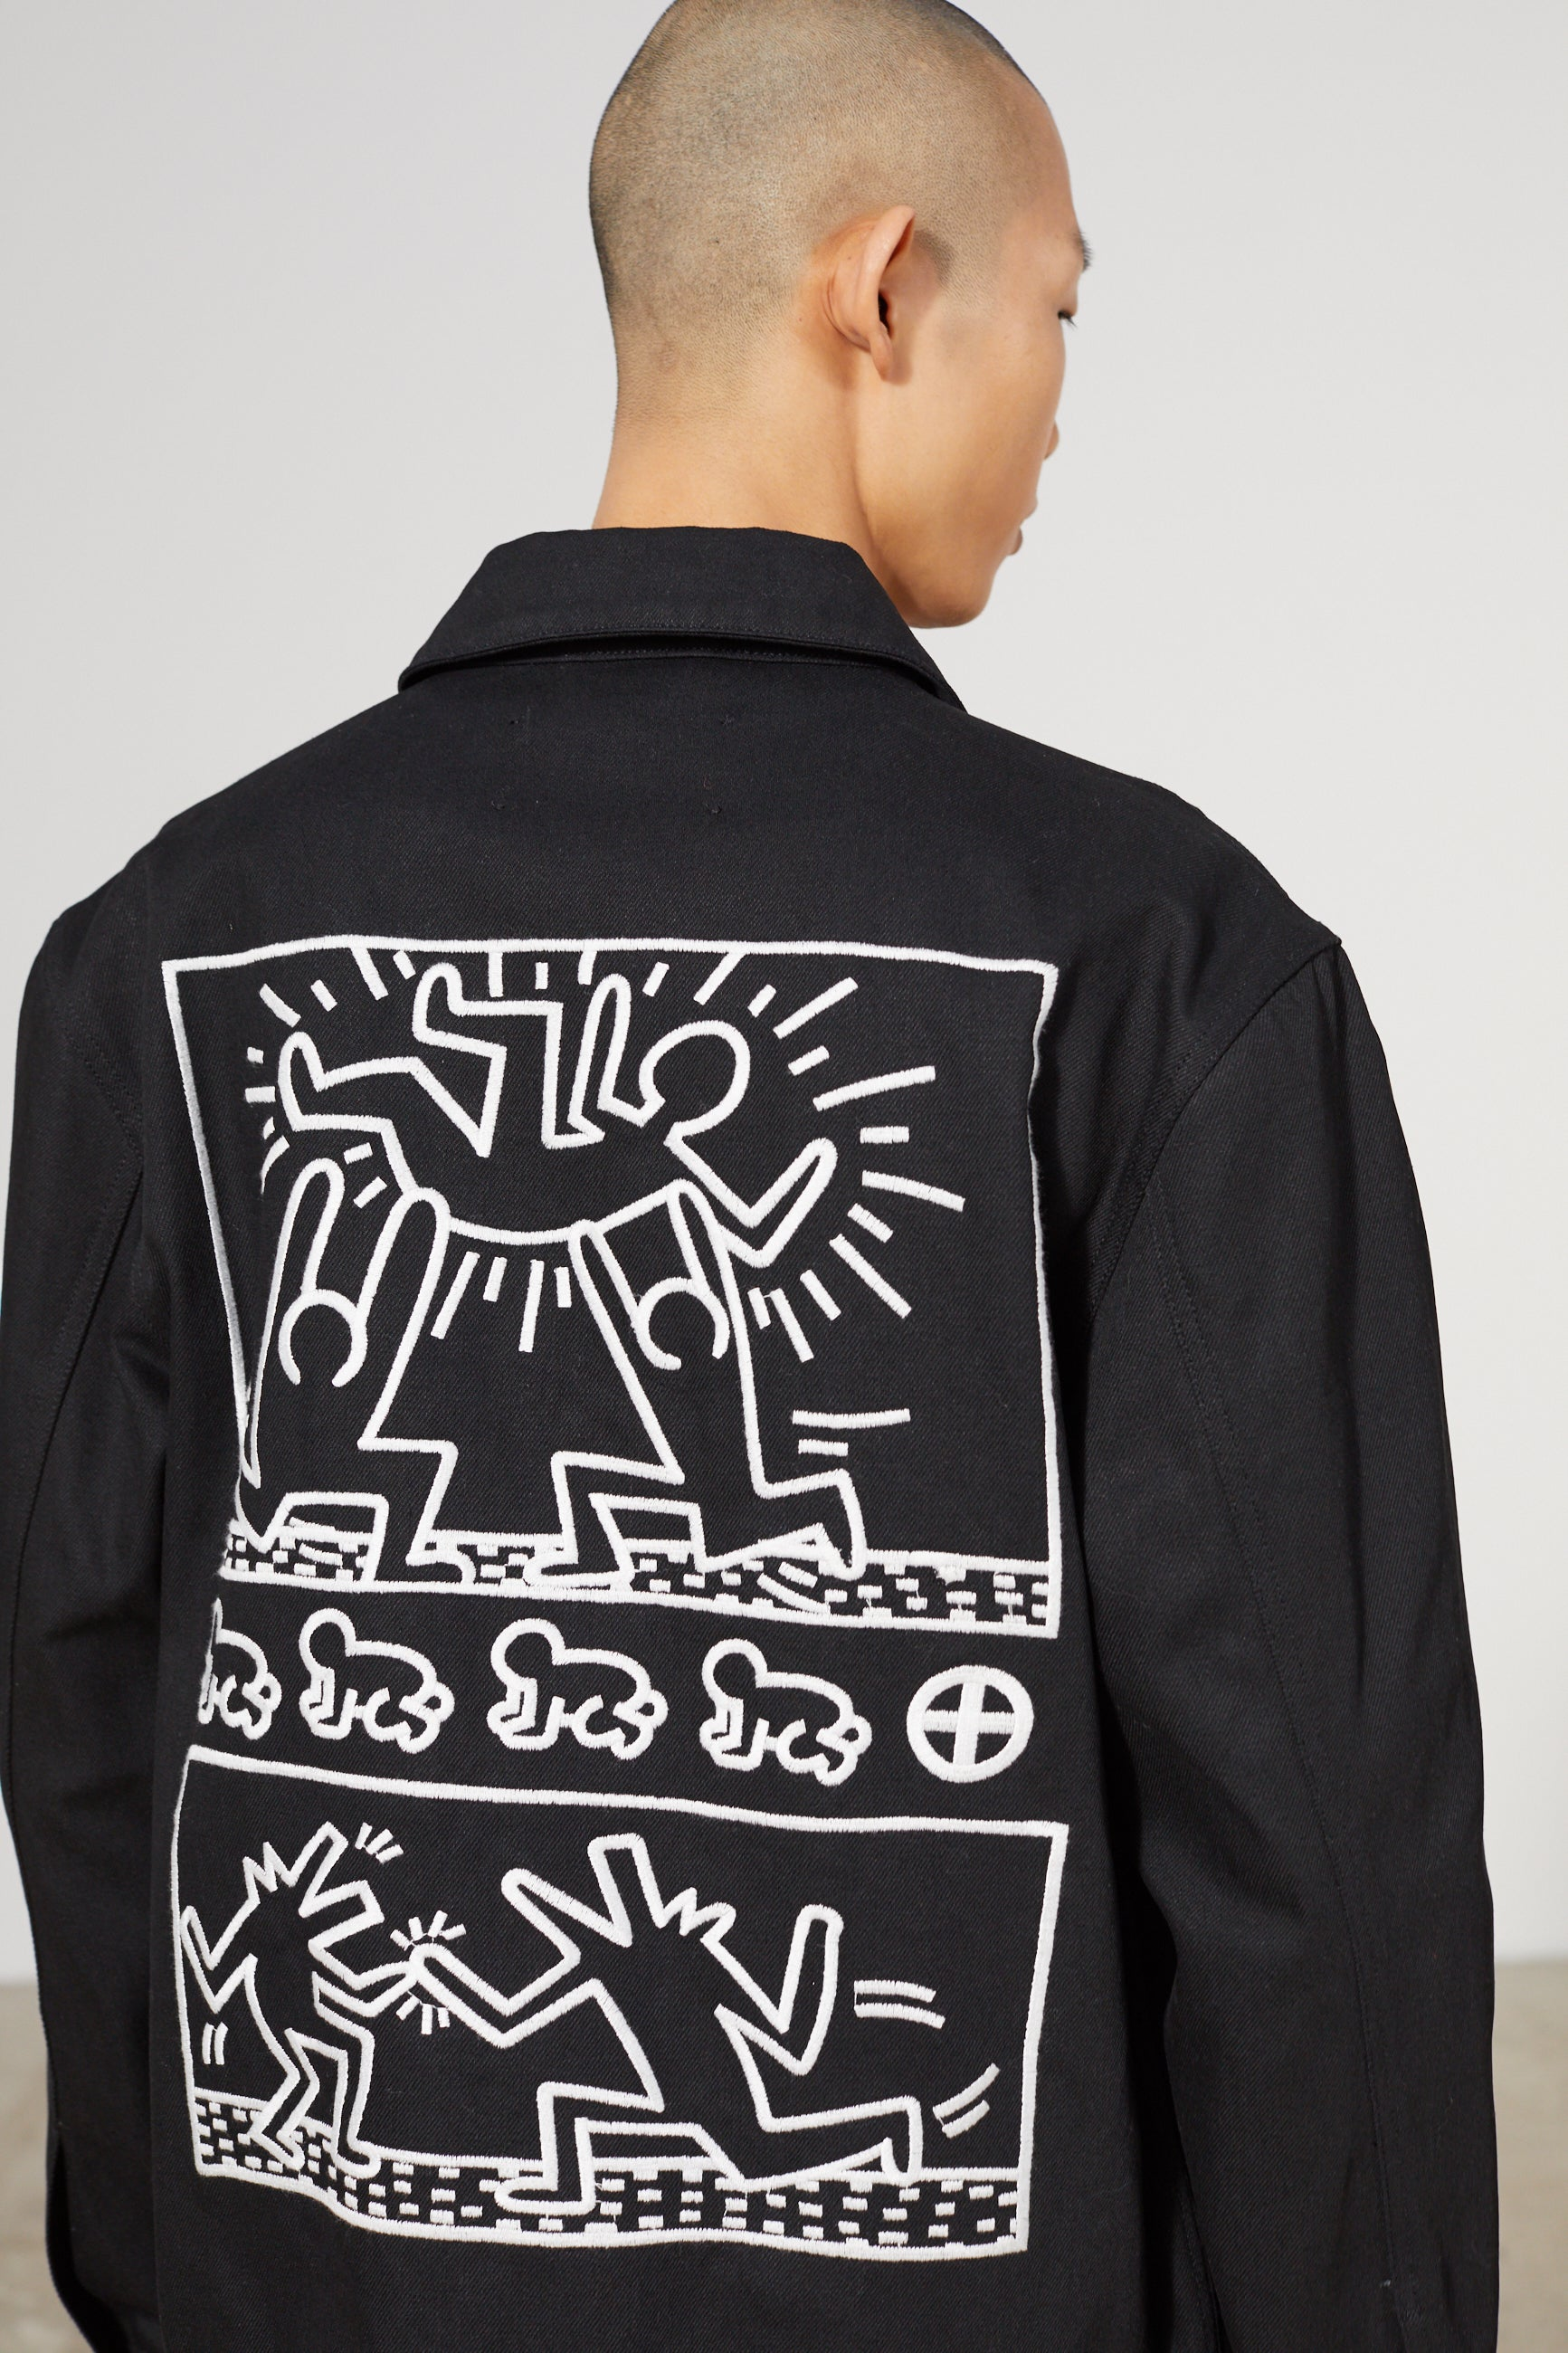 GUEST DENIM KEITH HARING BLACK JACKET